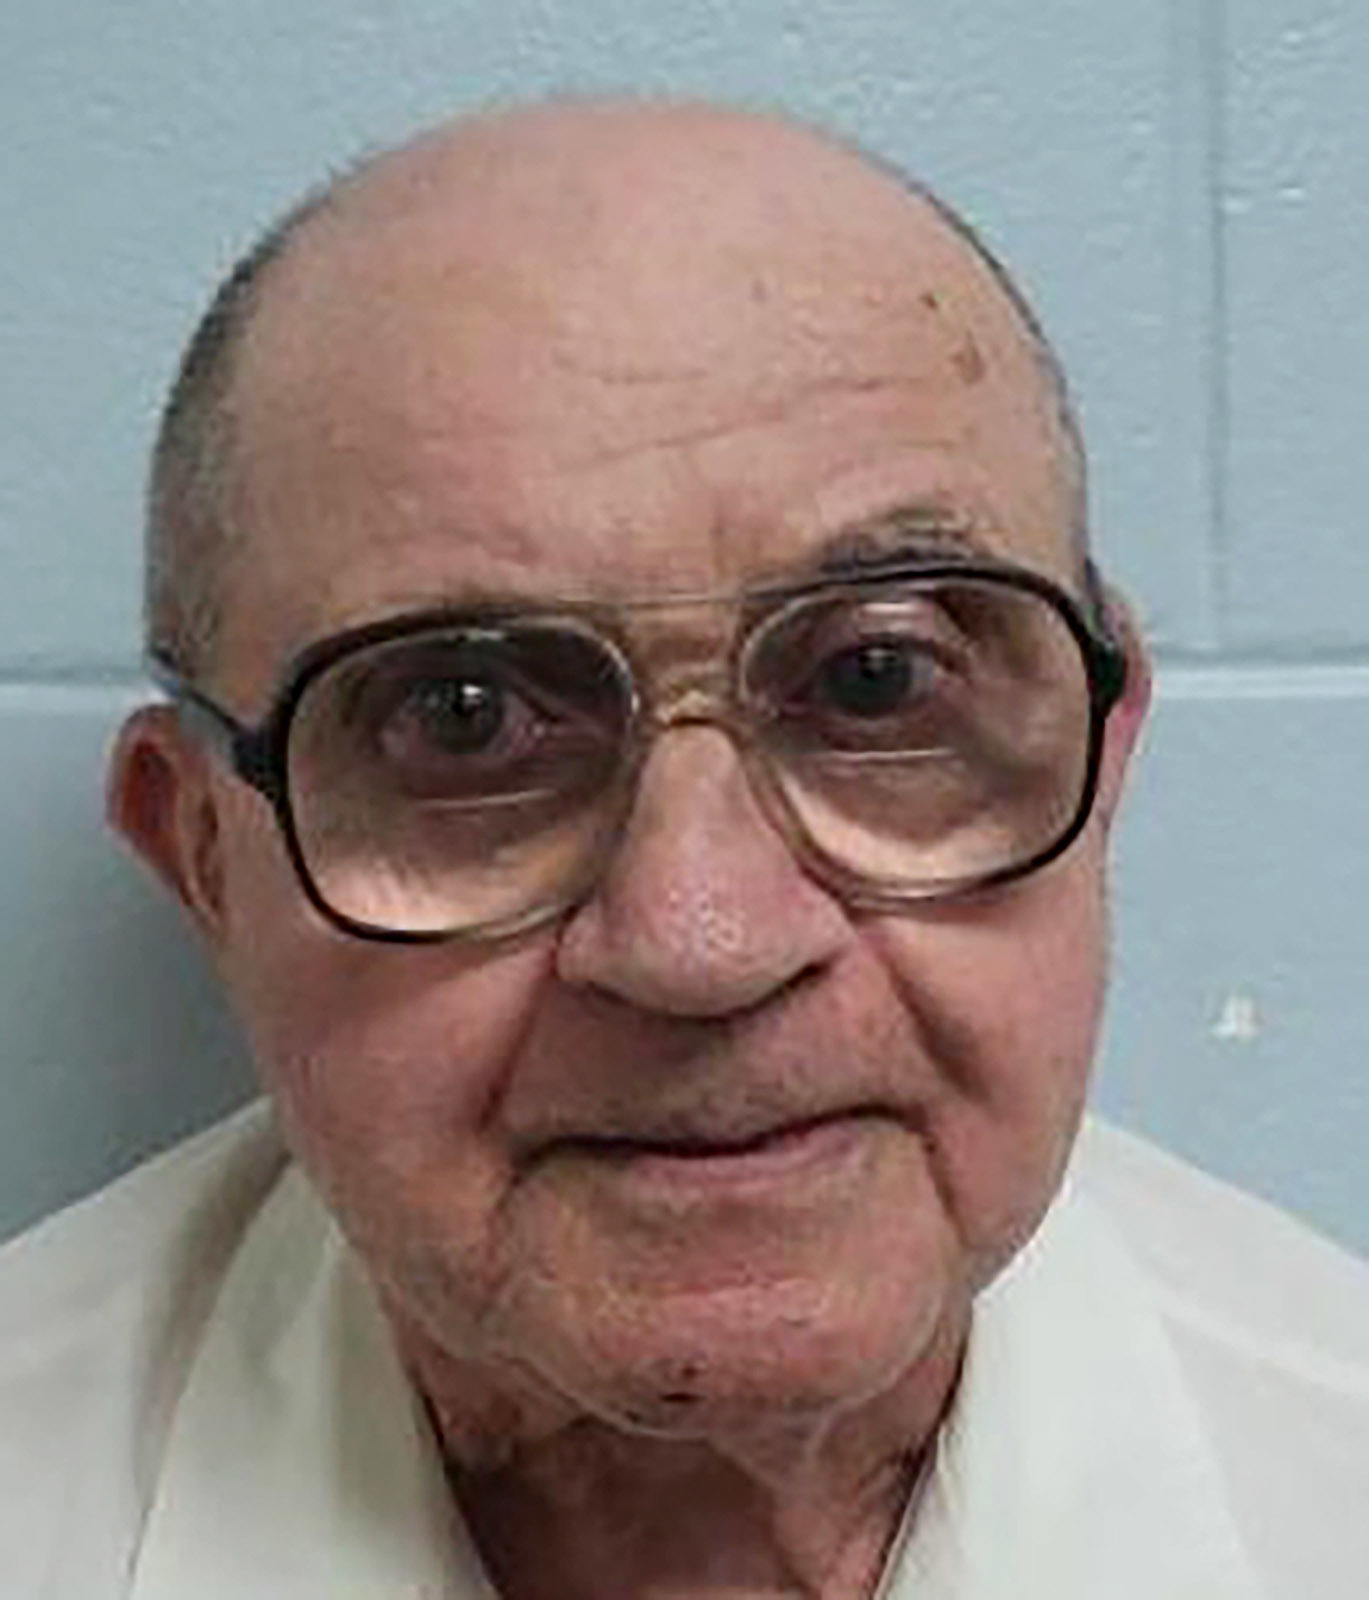 Thomas Edwin Blanton Jr., a one-time Ku Klux Klansman convicted in the 1963 church bombing that killed four black girls in Birmingham, Ala. Alabama's parole board is scheduled to consider Blanton for early release during a meeting on Aug. 3.